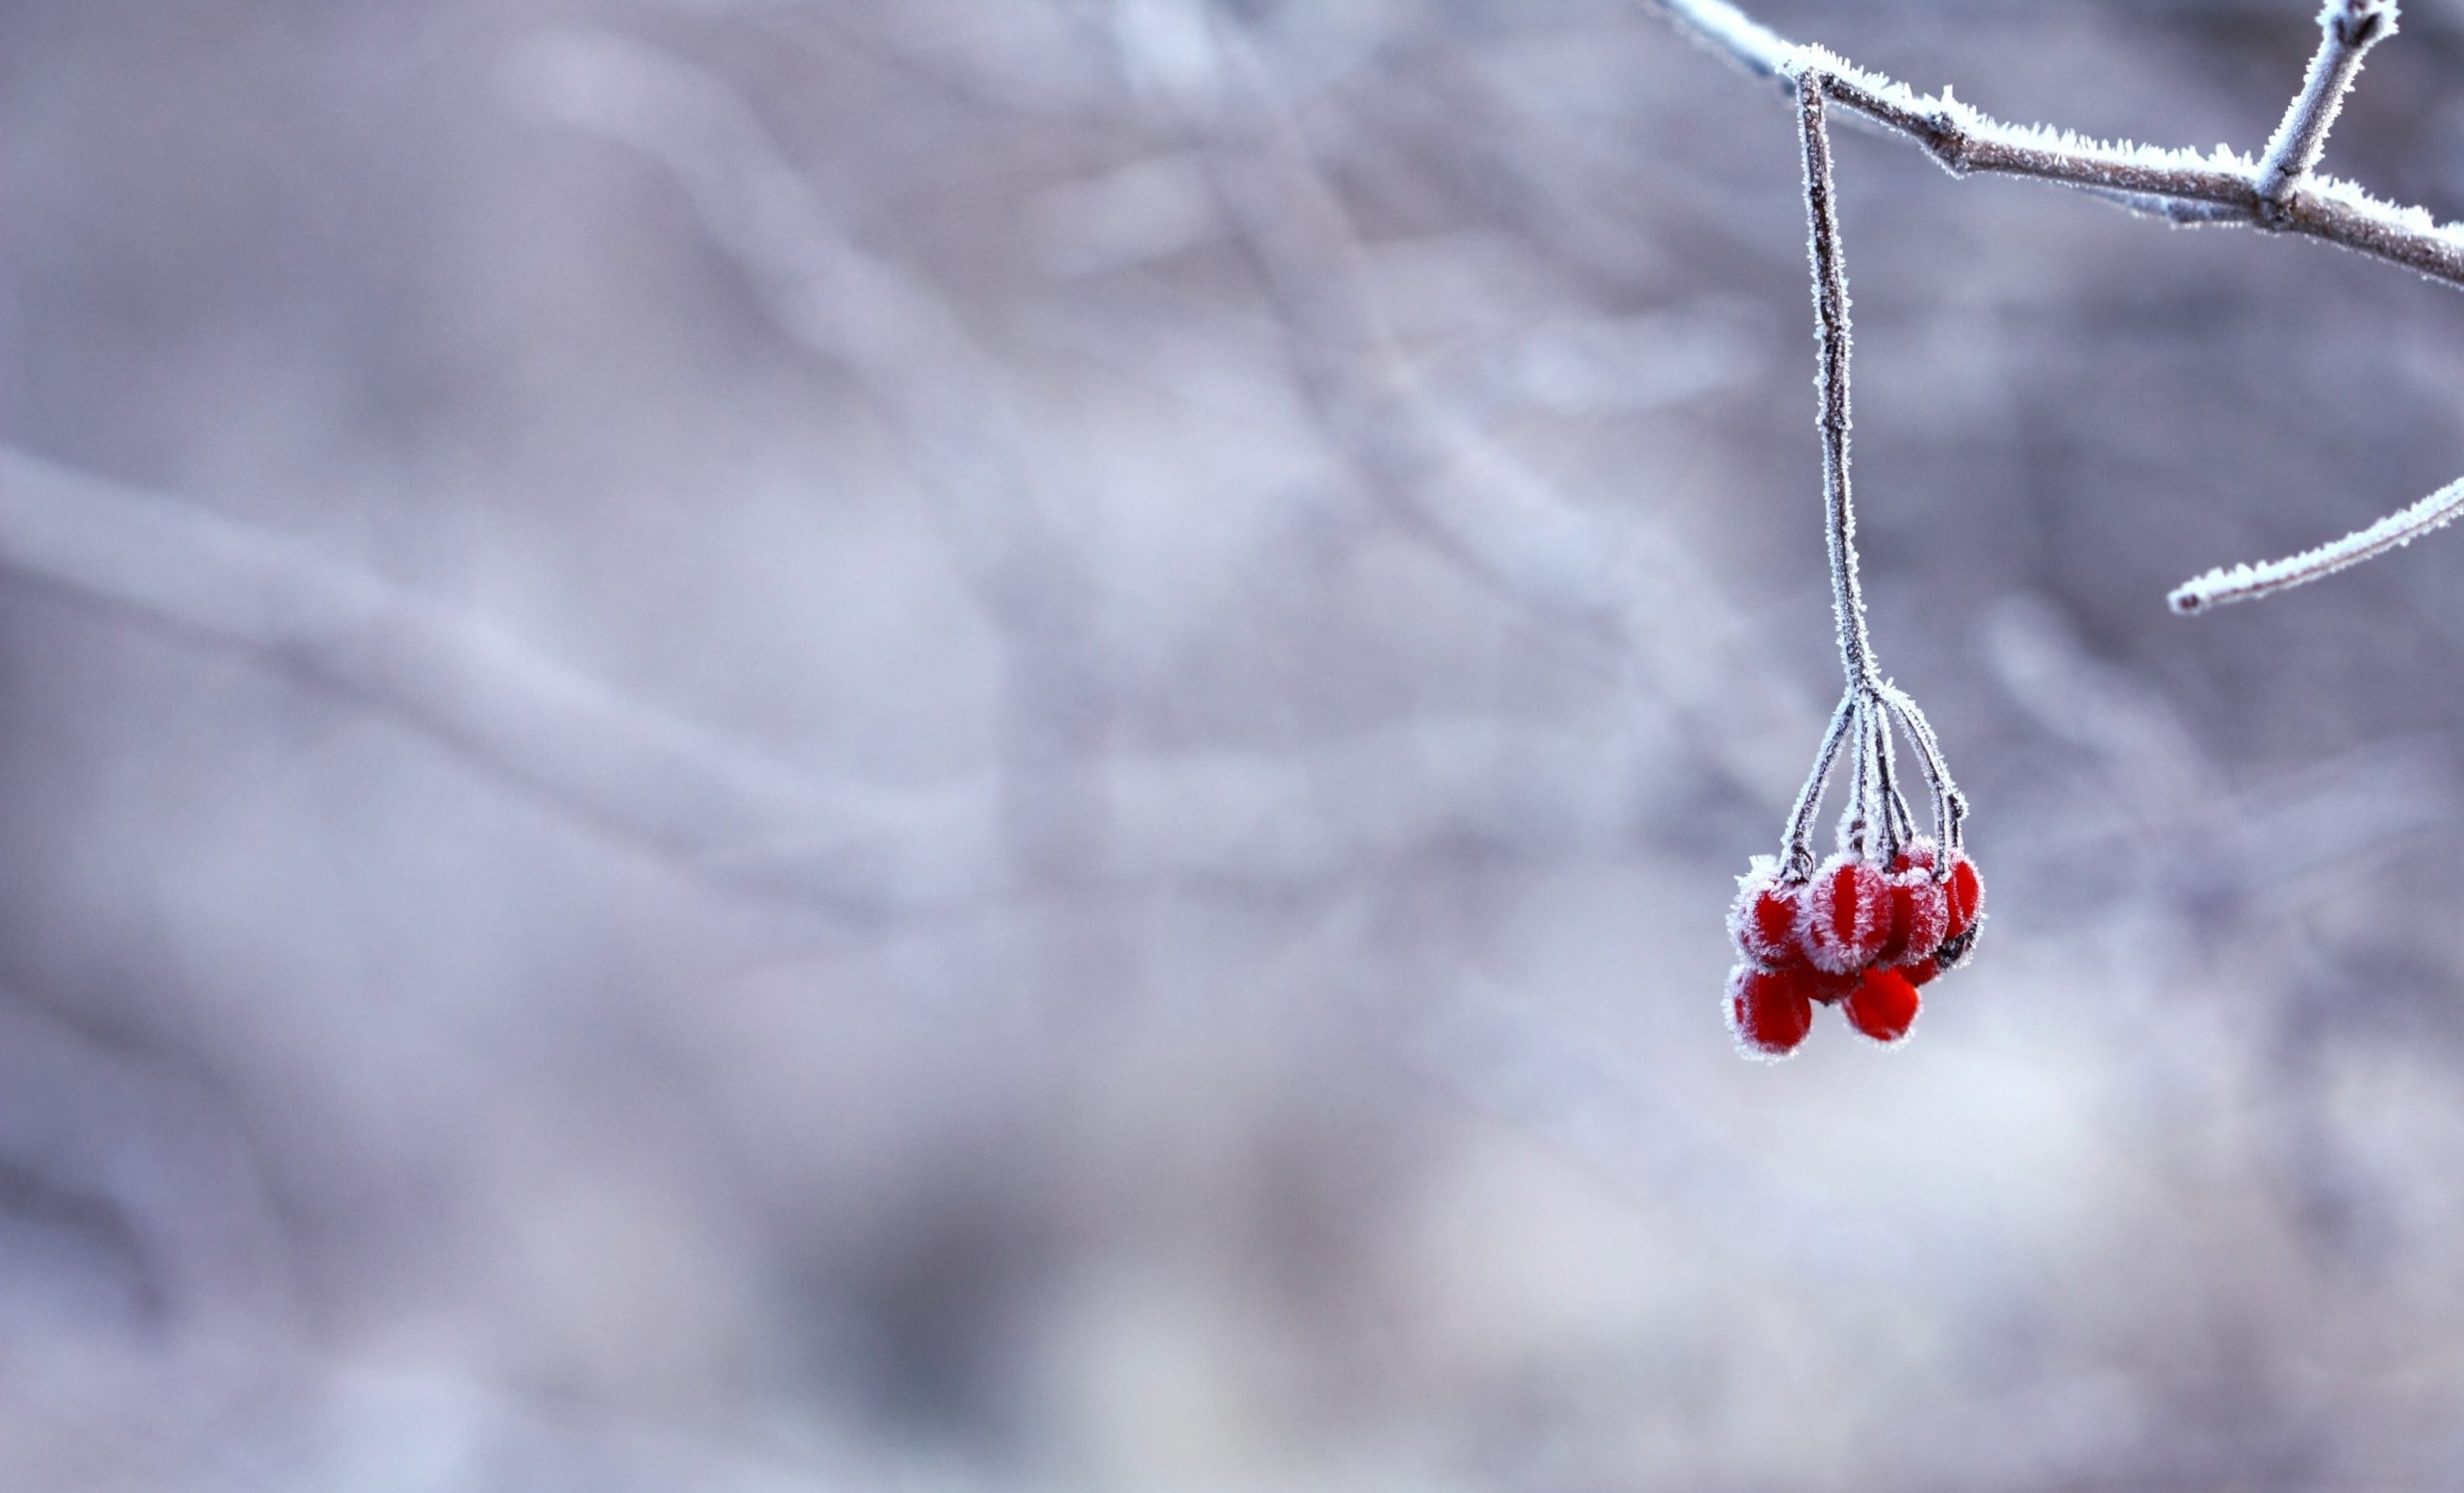 red-fruit-handing-on-tree-branch-selective-color-photography-64705